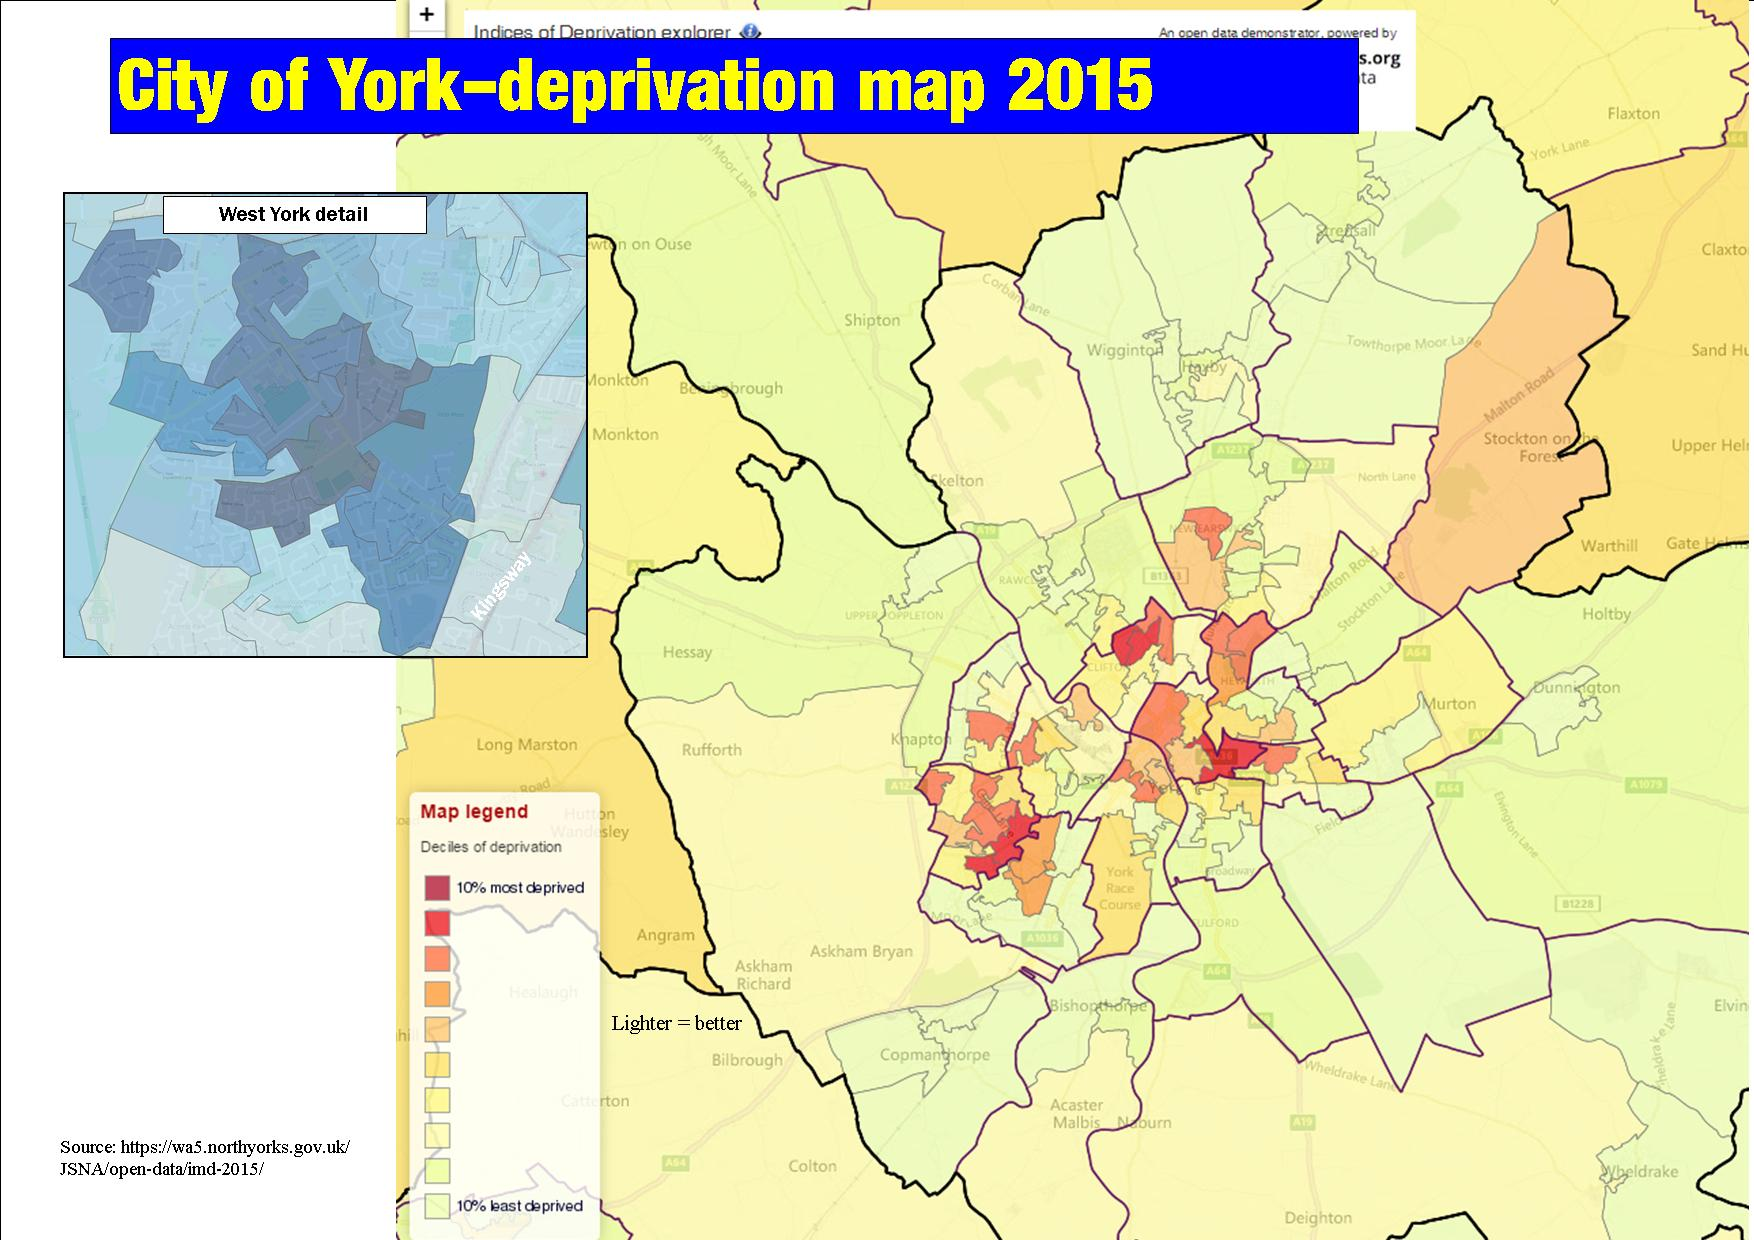 Deprivation map 2015